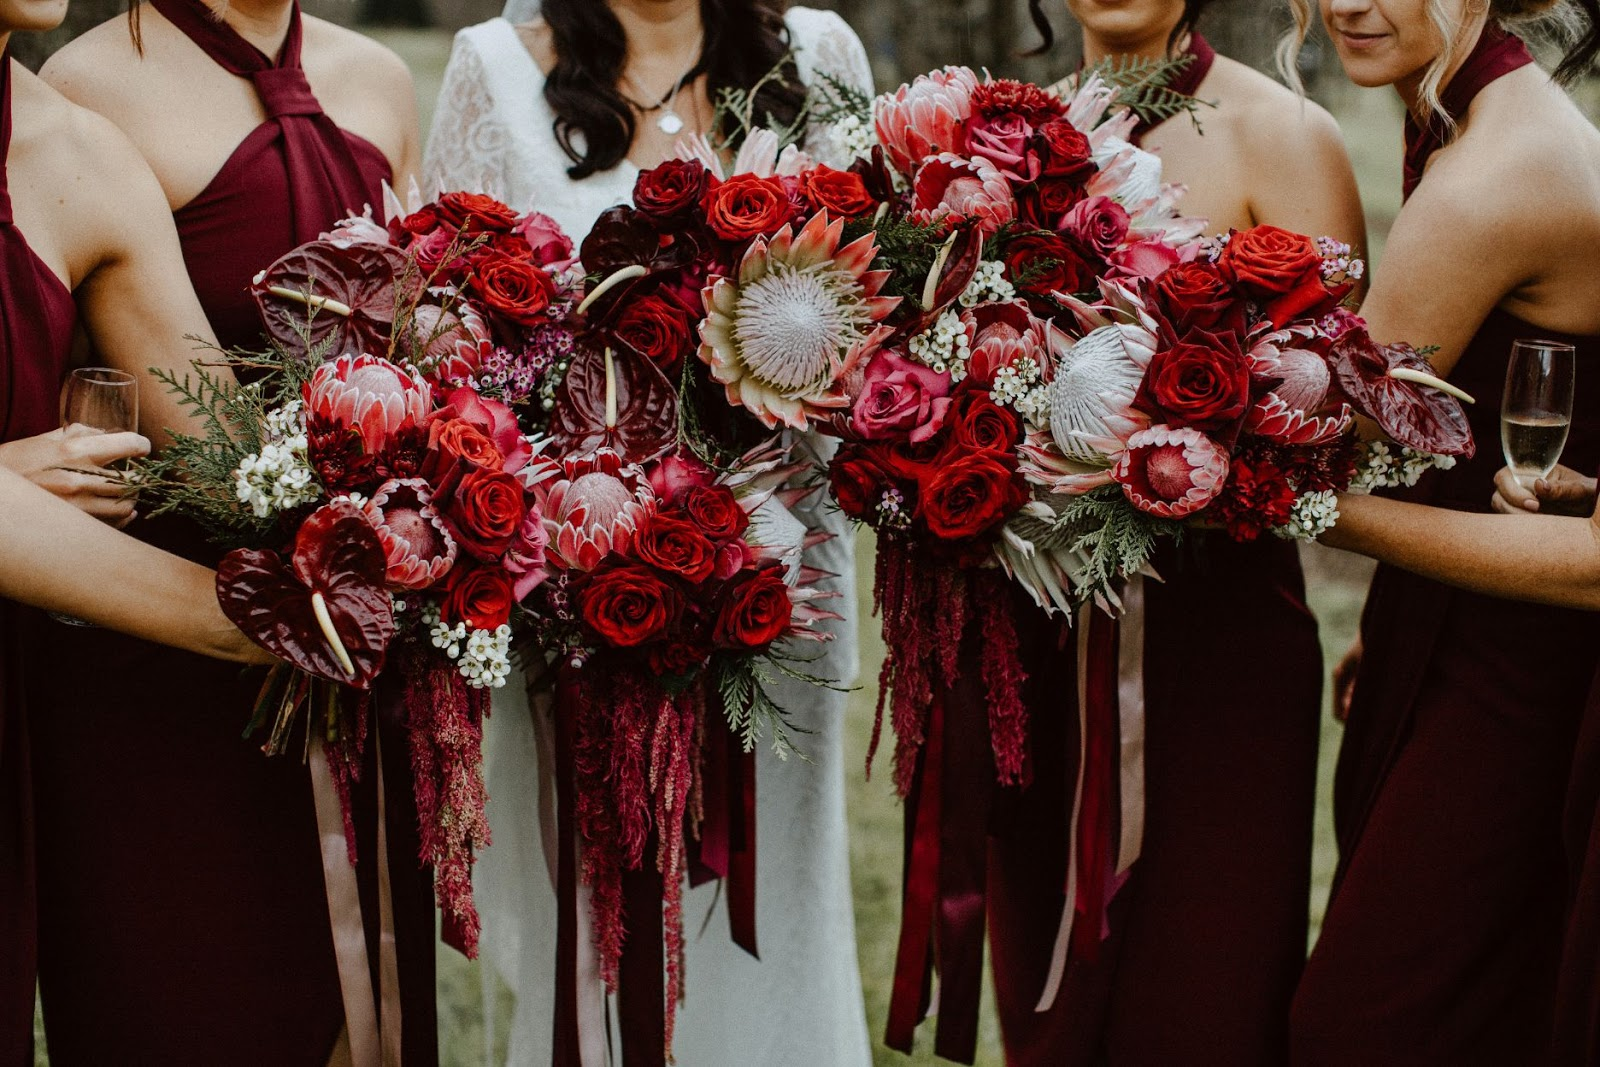 WEDDING FLORALS PERTH FLOWERS INSTALLATION LANA AND CO PHOTOGRAPHY